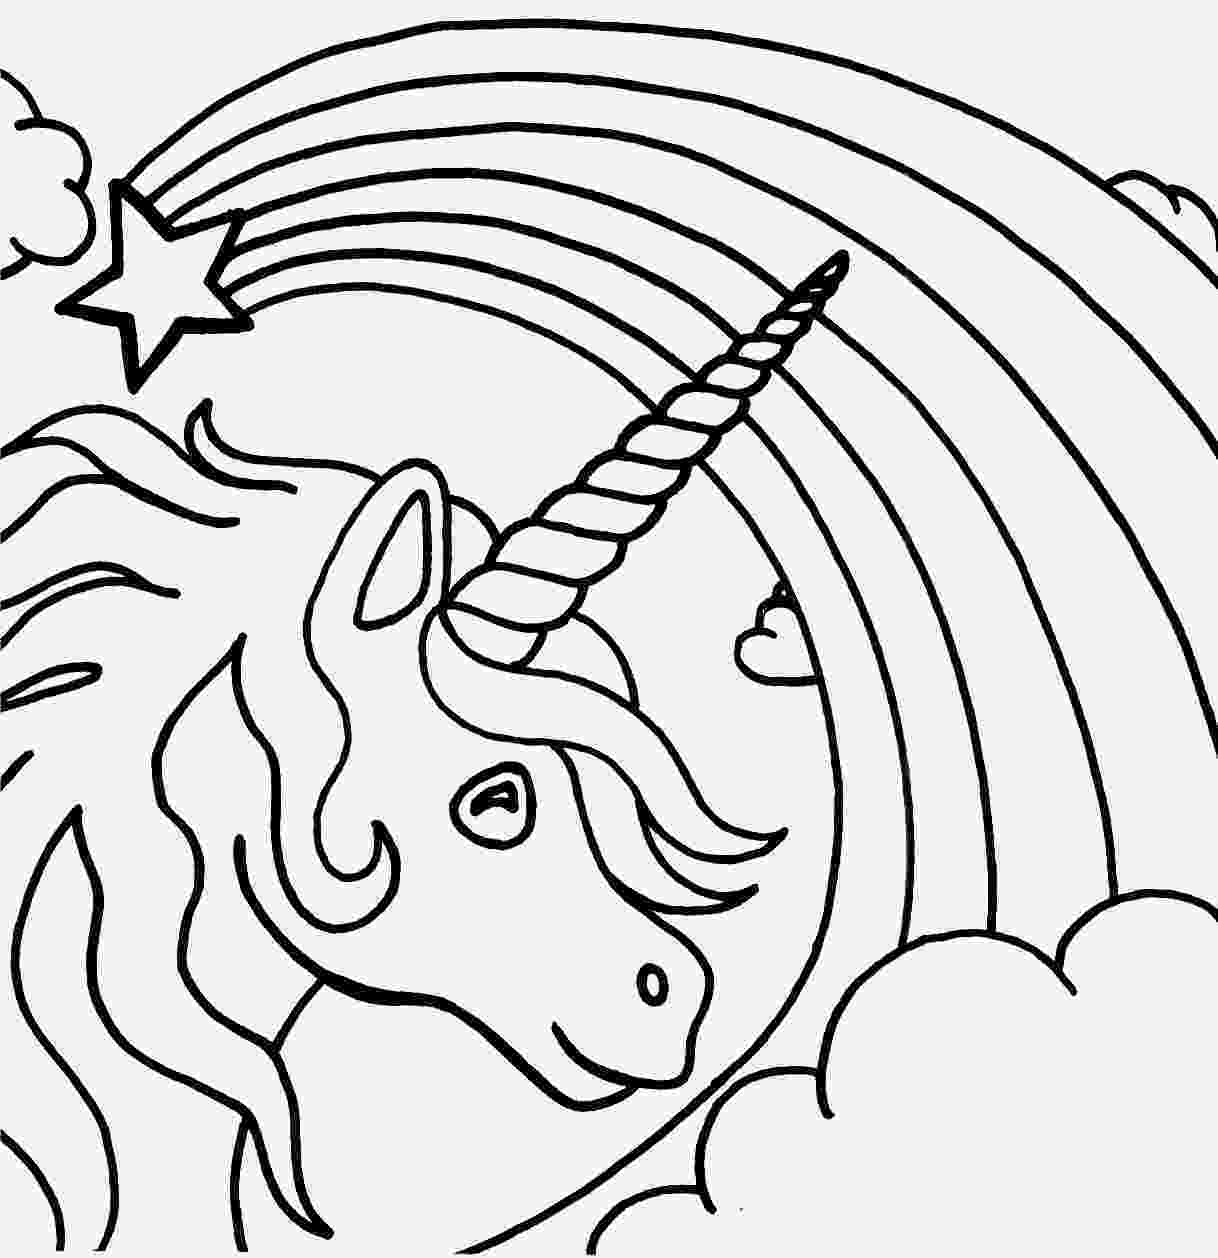 unicorn colouring free printable unicorn coloring pages for kids colouring unicorn 1 1